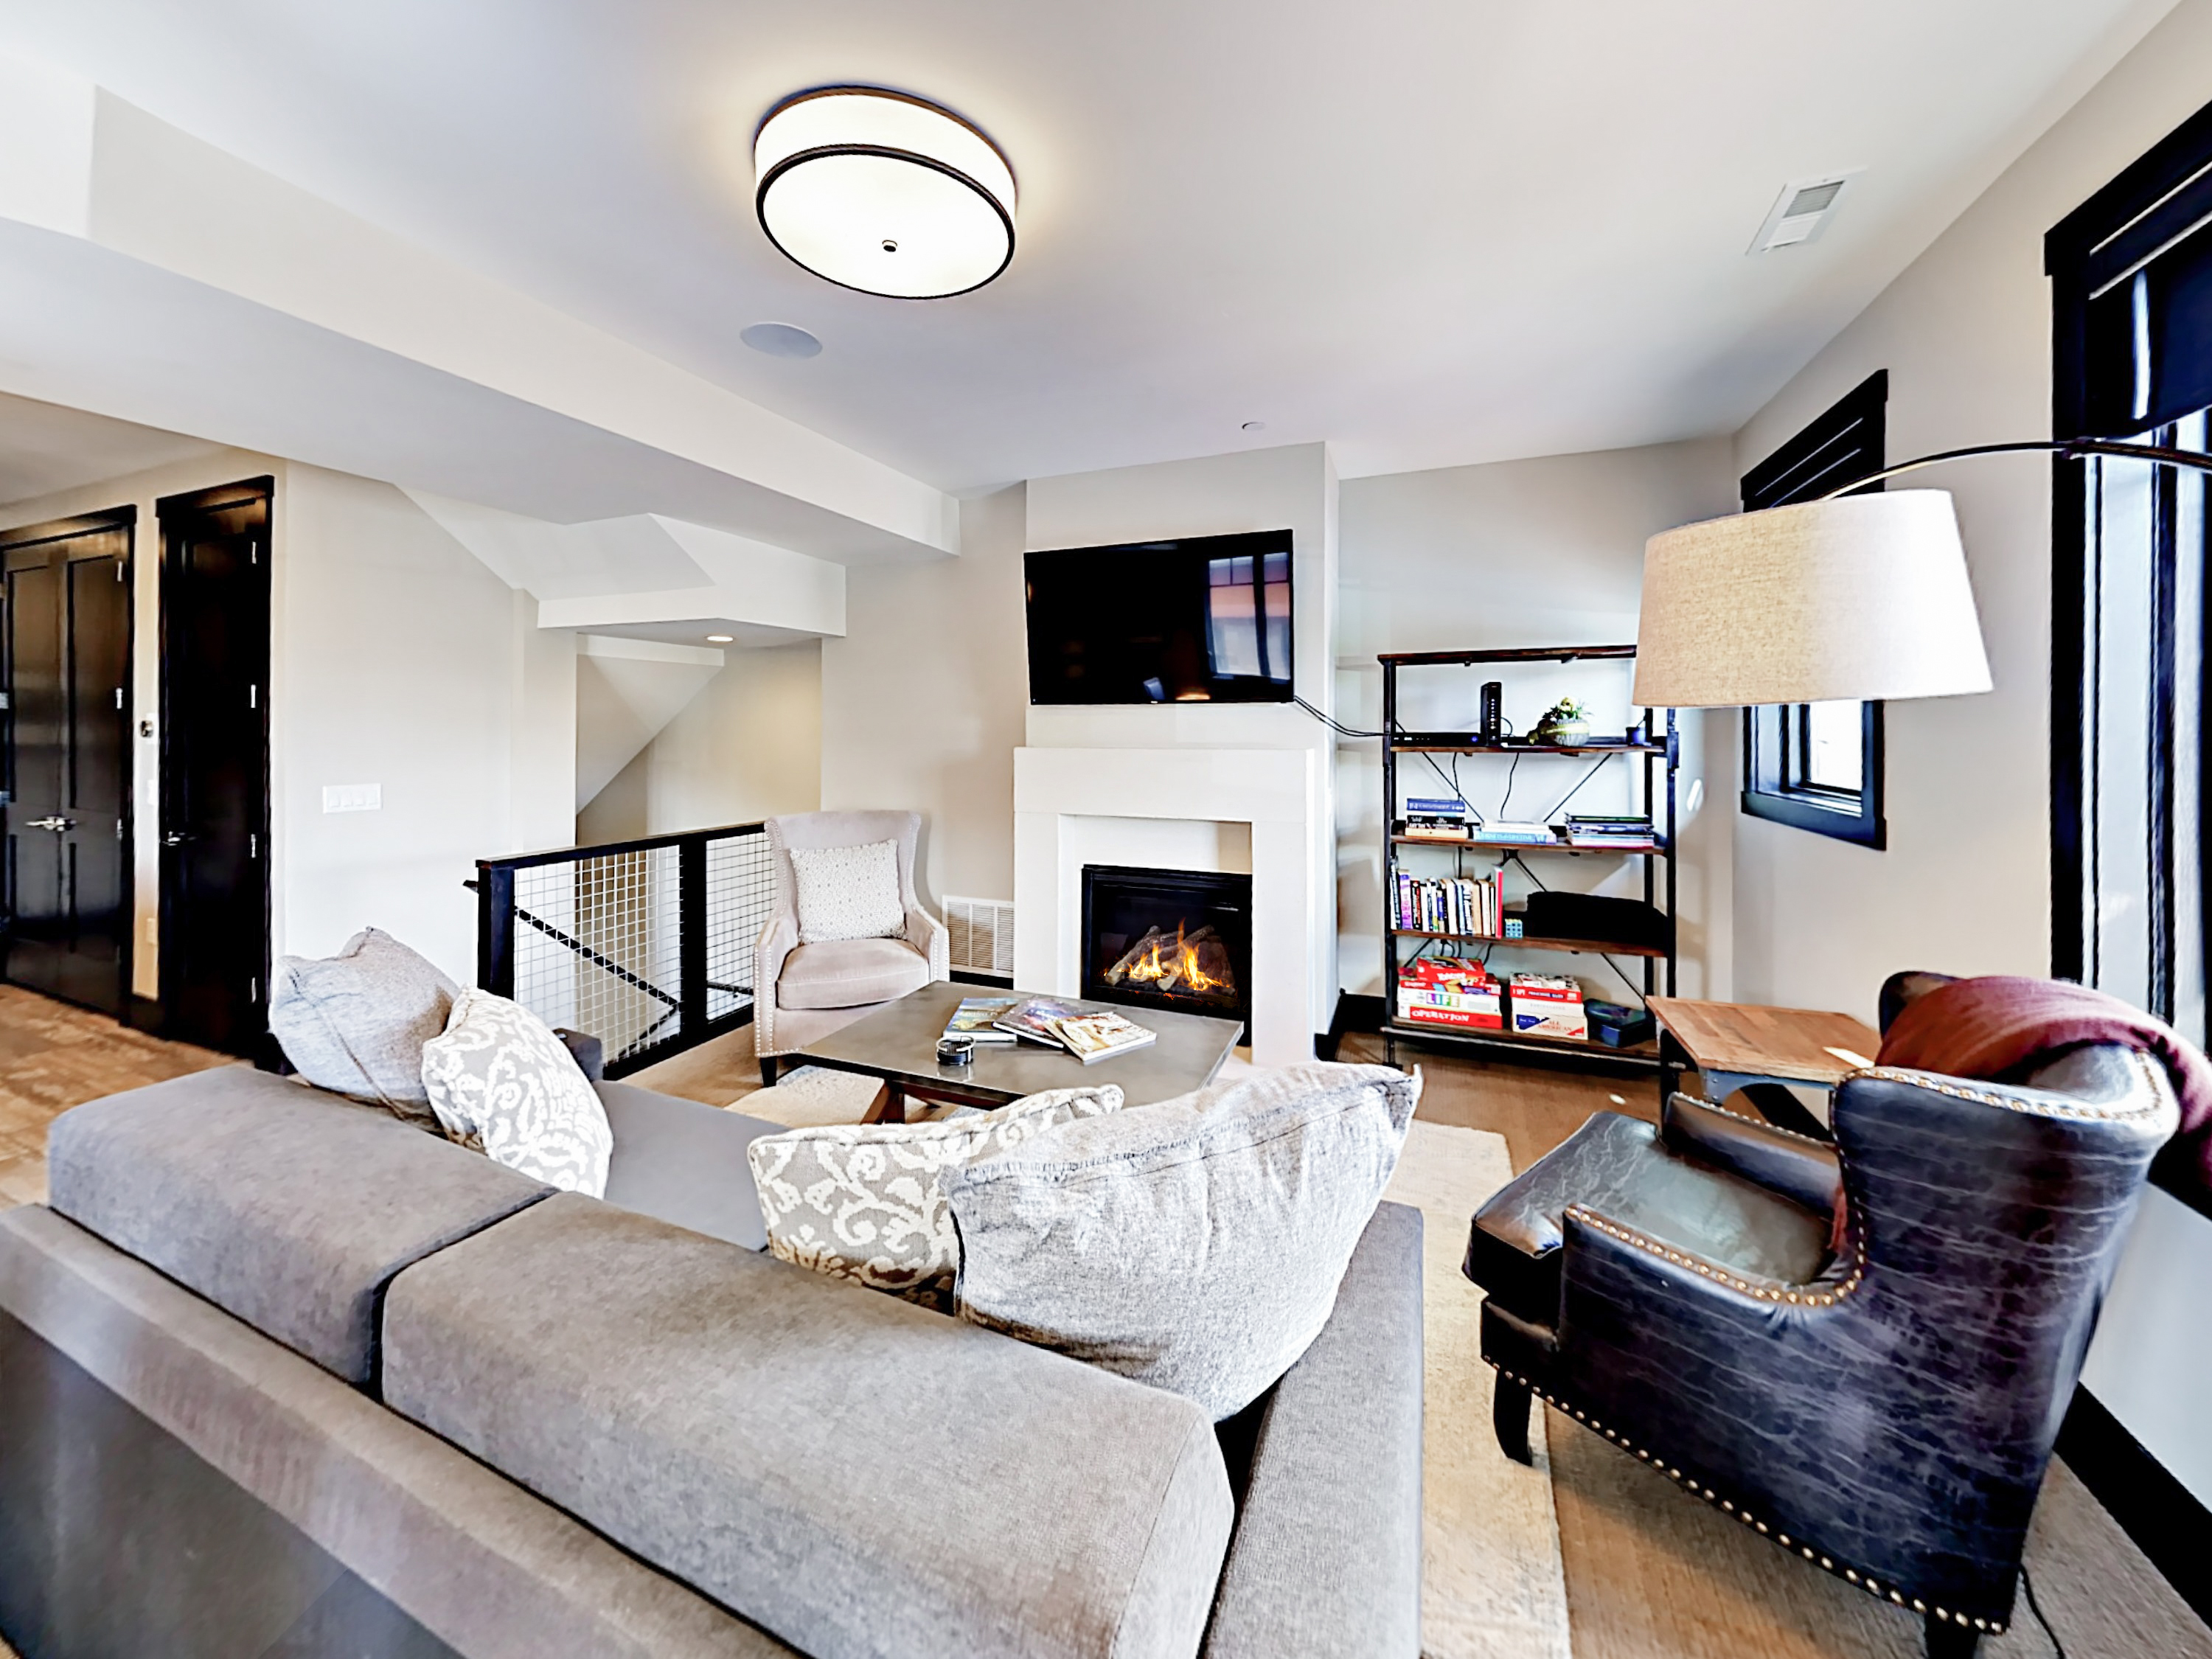 Park City UT Vacation Rental Comfy seating for